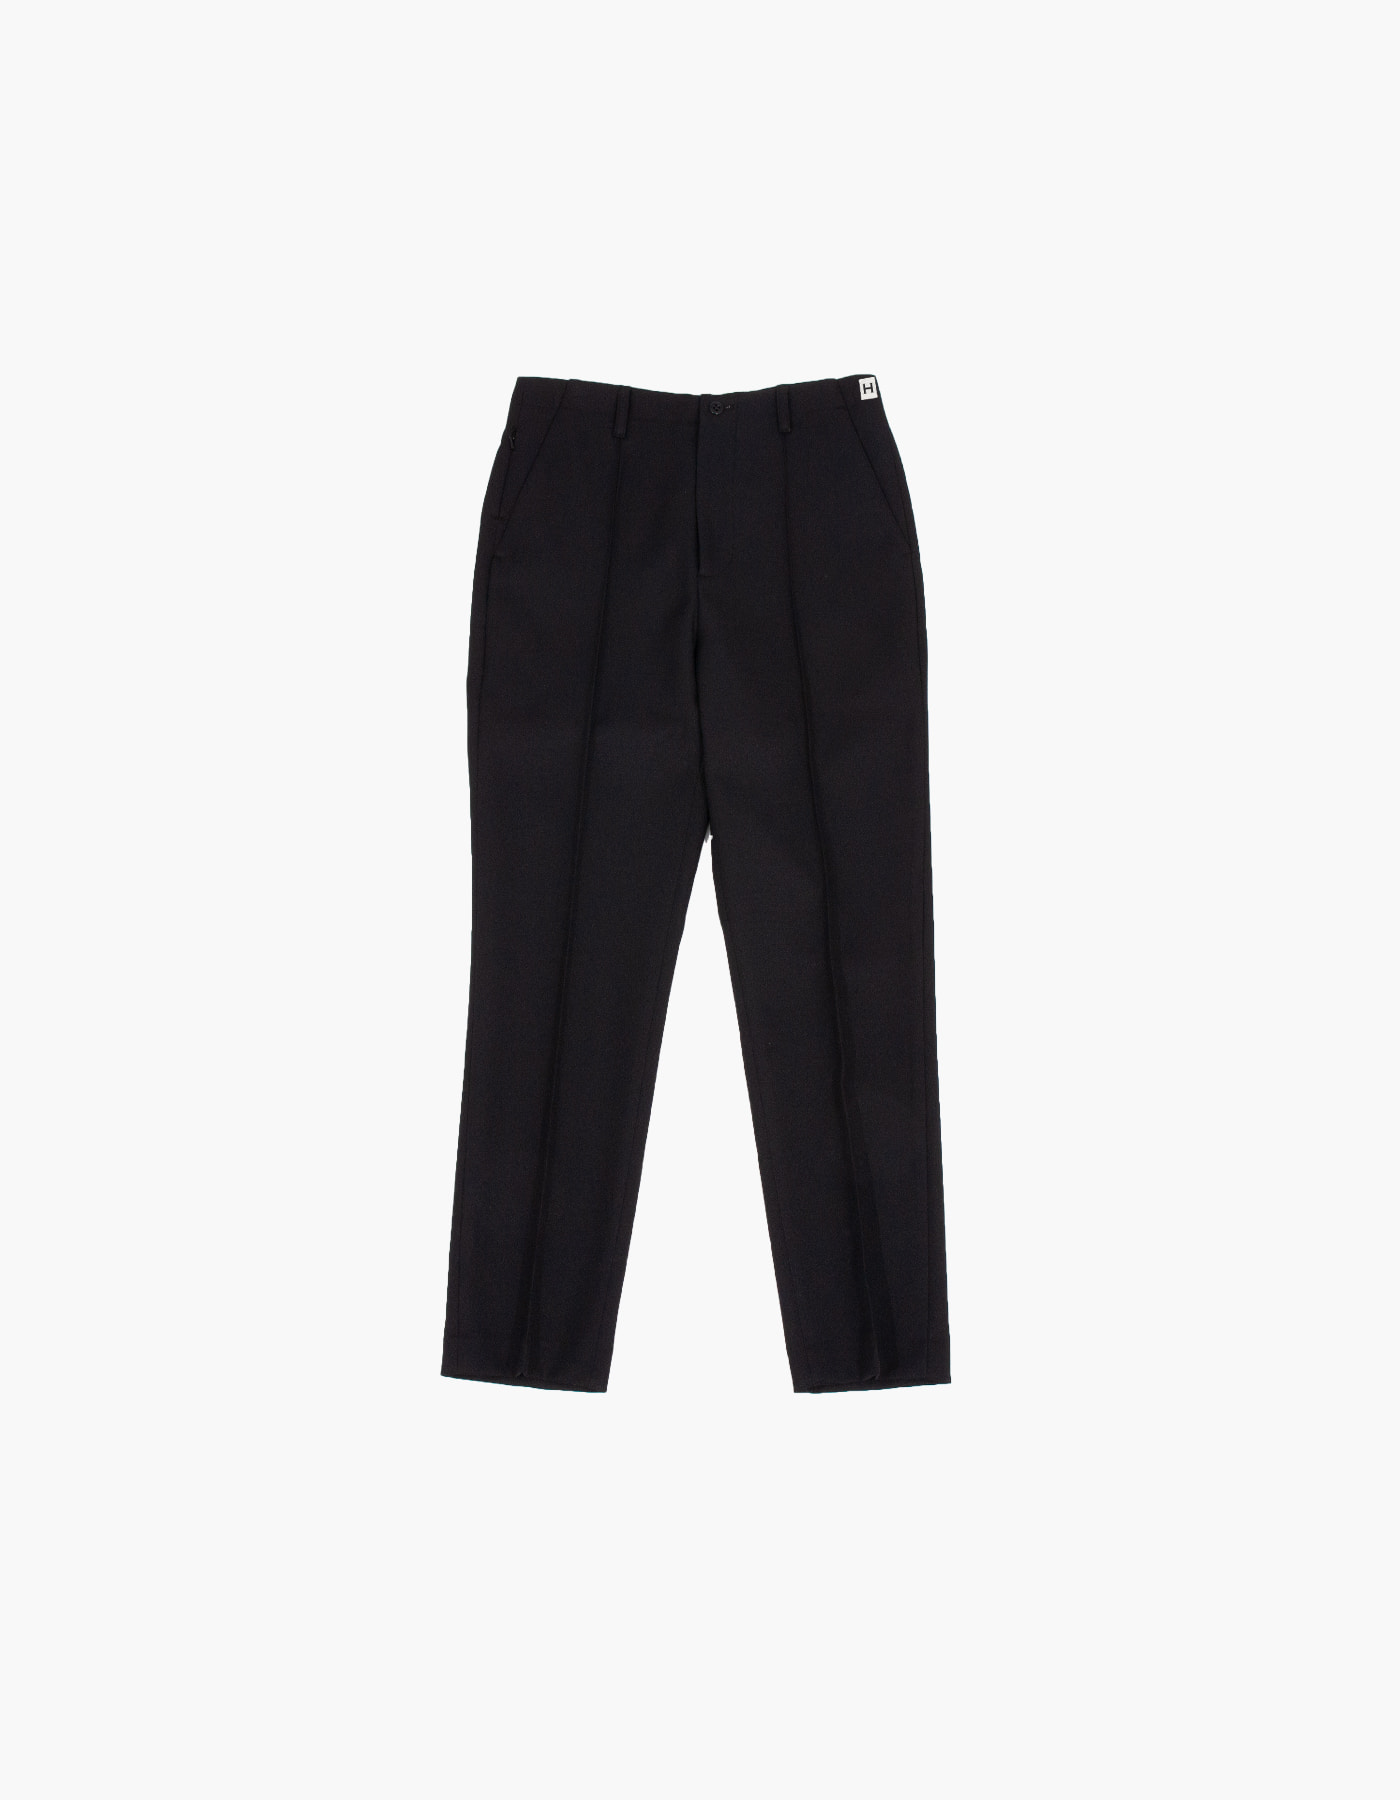 851 PIN TUCK CHINO PANTS (W) / BLACK